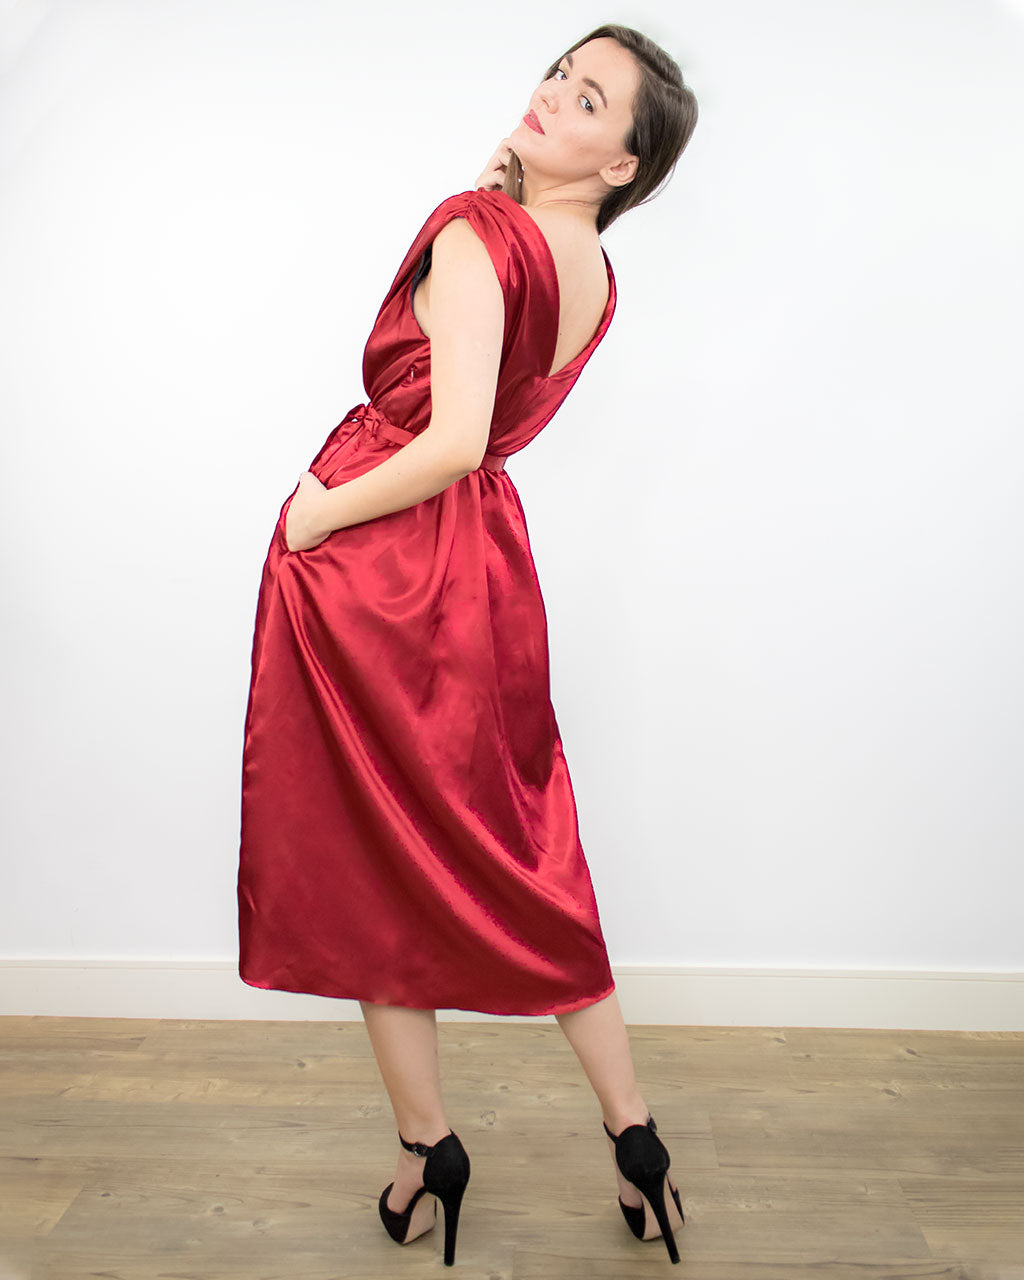 Sustainable ethical satin silk red wrap ruched dress for formal cocktail party or wedding with belt made from recycled PET